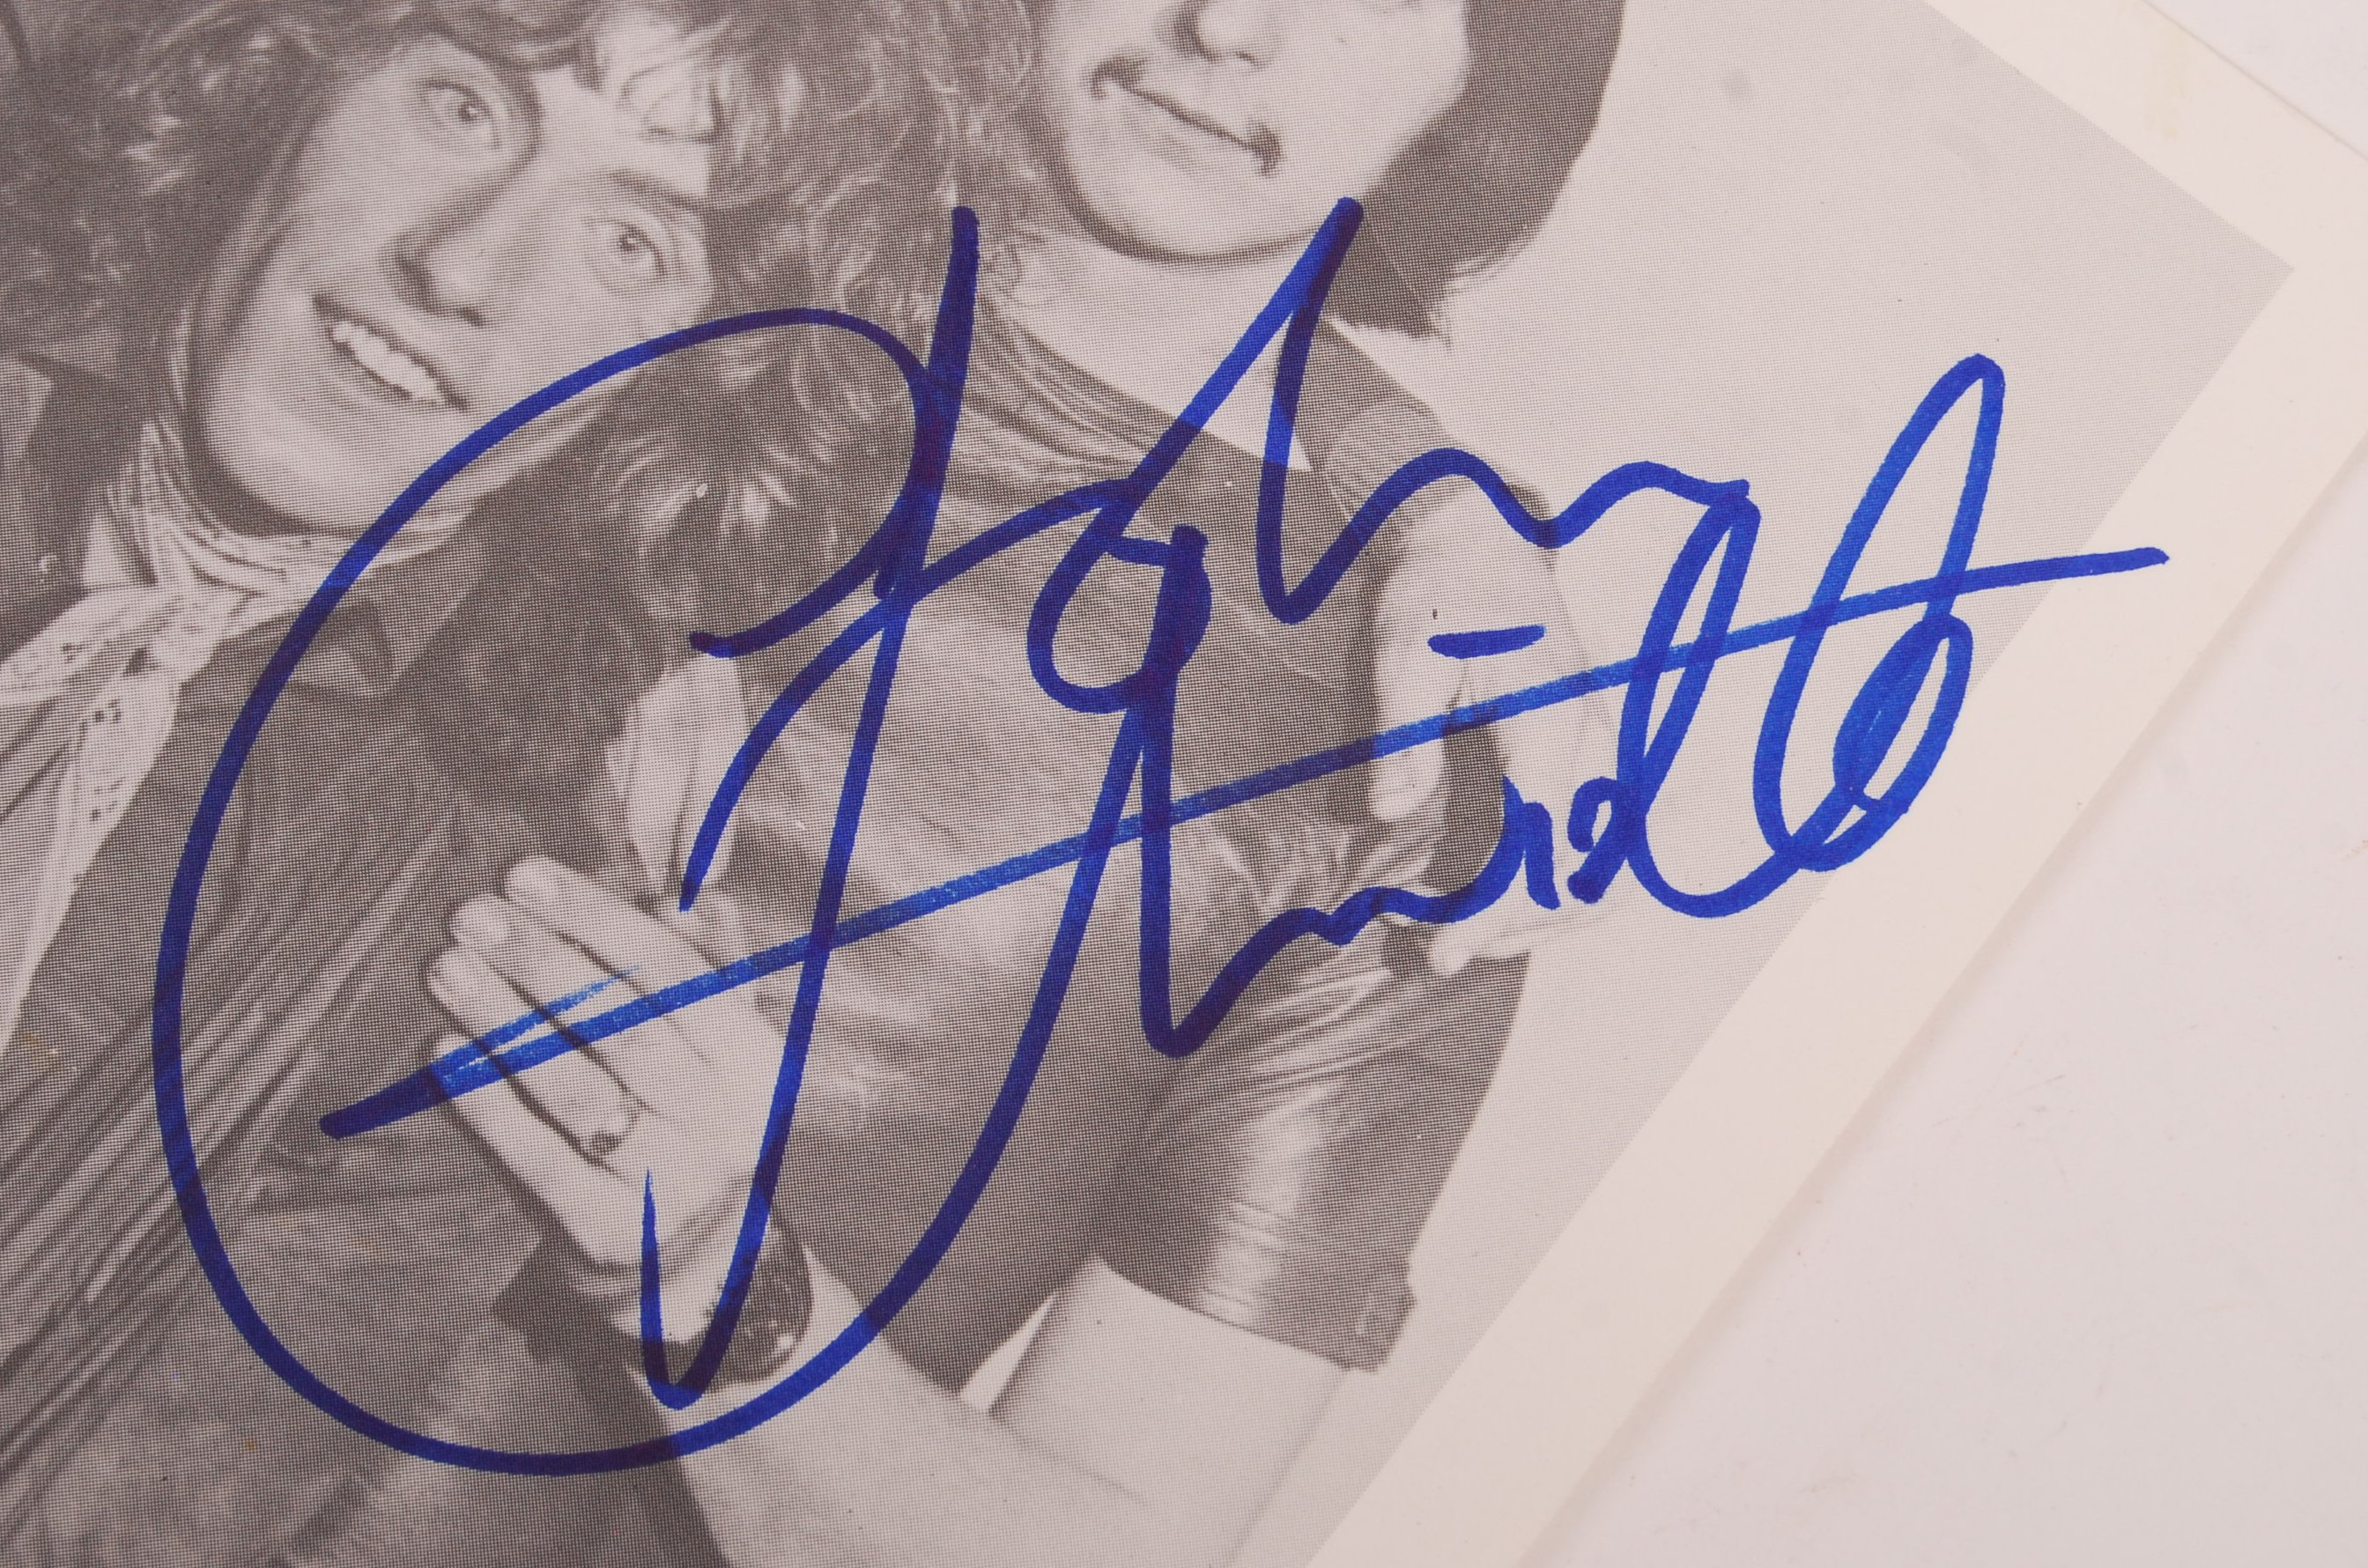 "RARE ' THE WHO ' VINTAGE SIGNED 8X10"" PROMOTIONAL - Image 4 of 4"